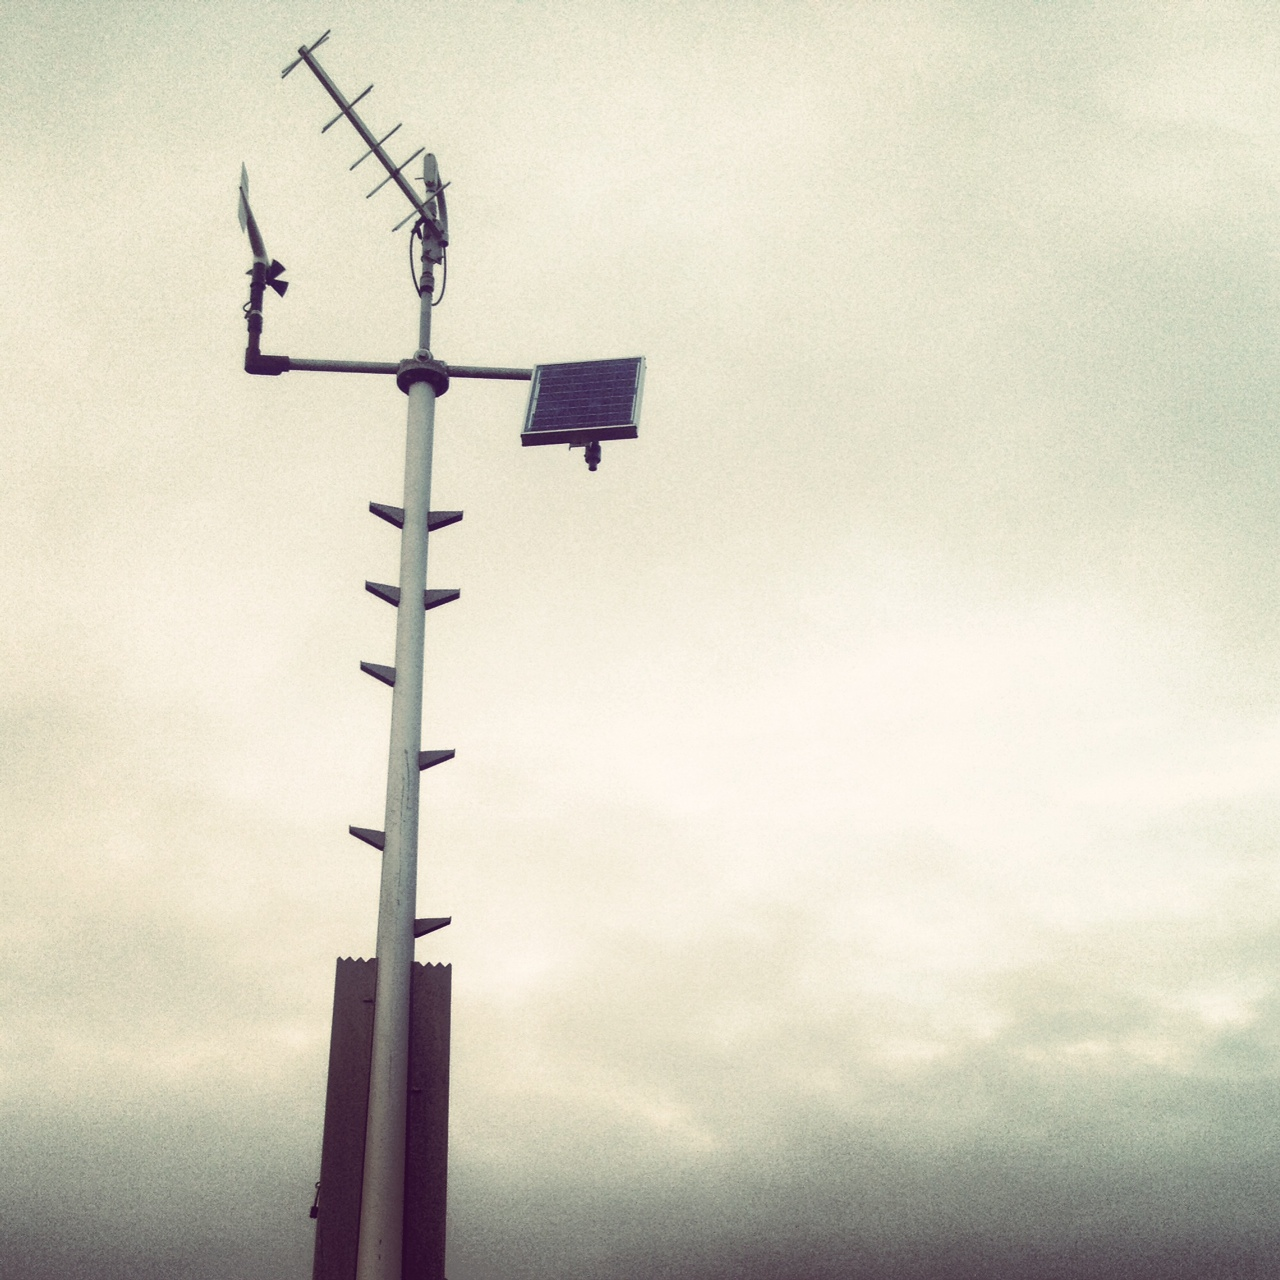 A lonely weather station located amid a turbulent sky